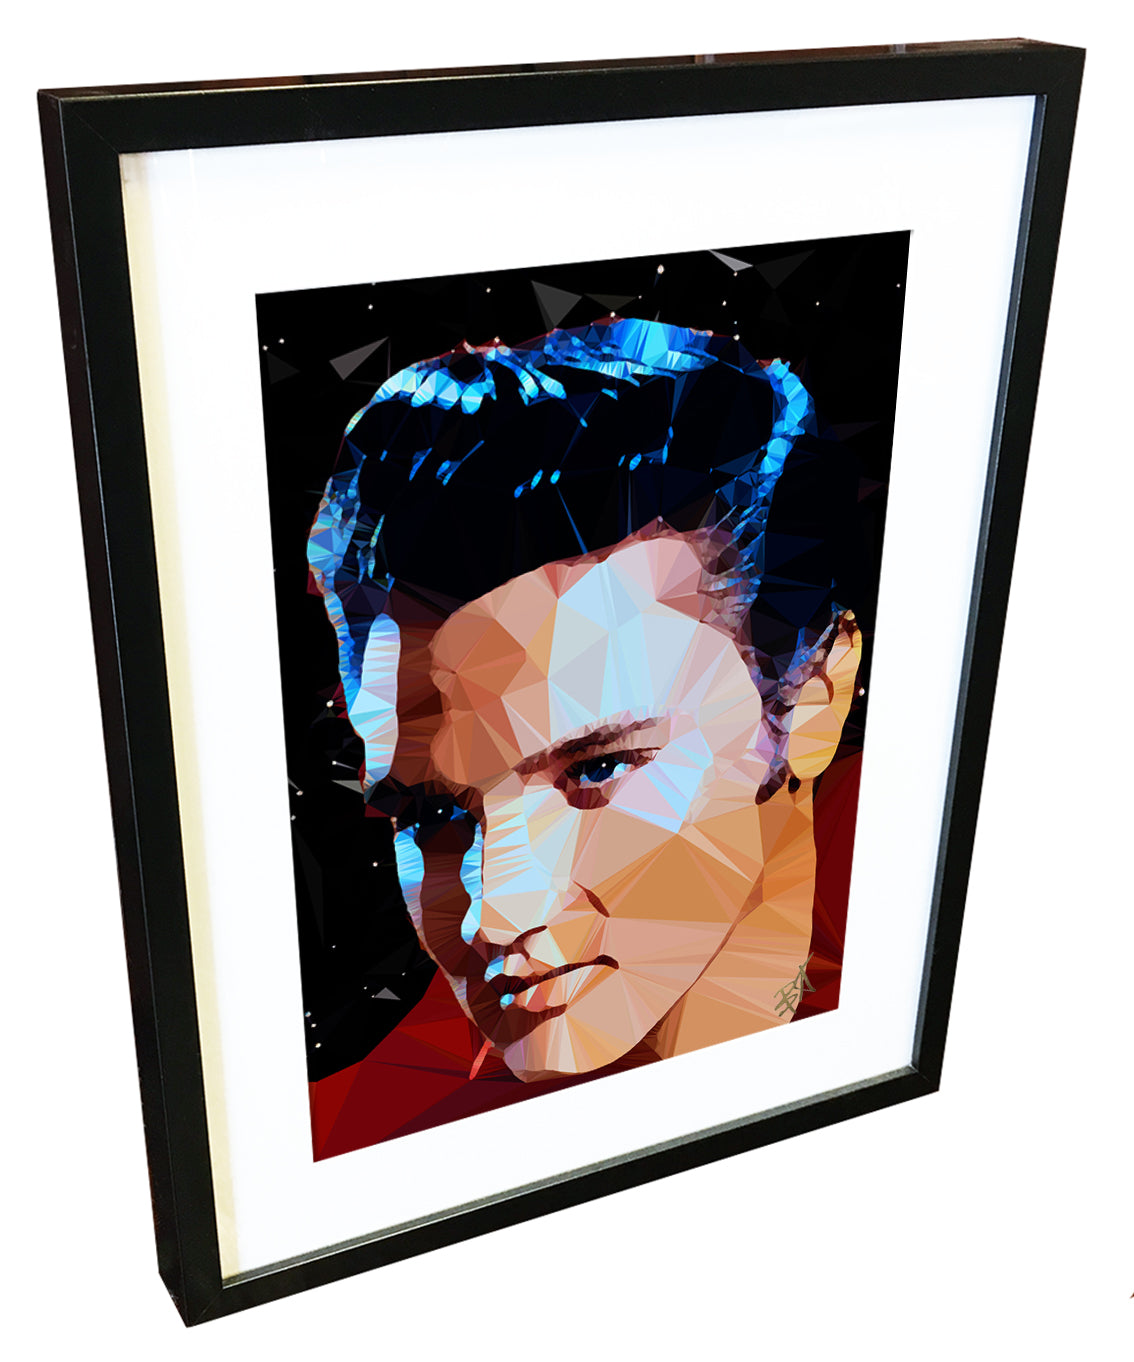 Elvis #1 by Baiba Auria - signed art print - Egoiste Gallery - Art Gallery in Manchester City Centre